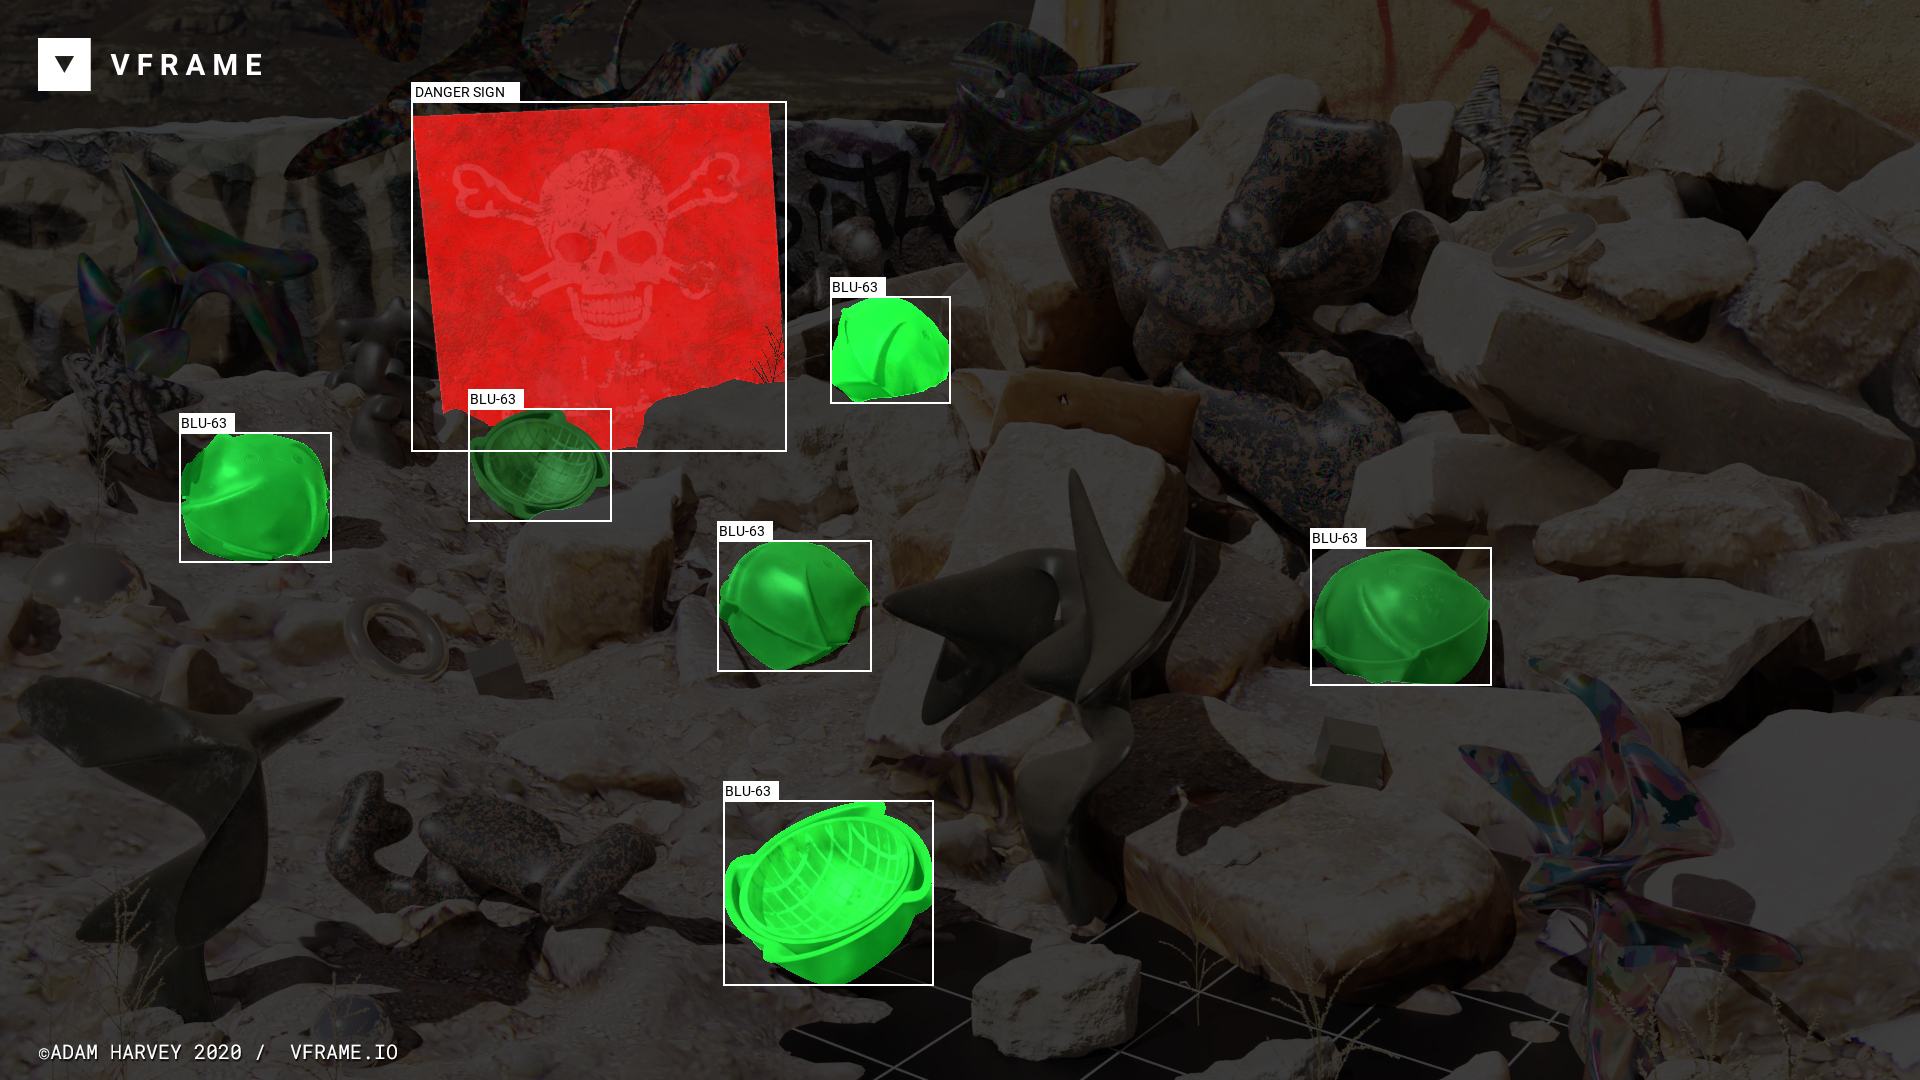 A machine-learning system detects BLU-63 cluster munitions in a still image.